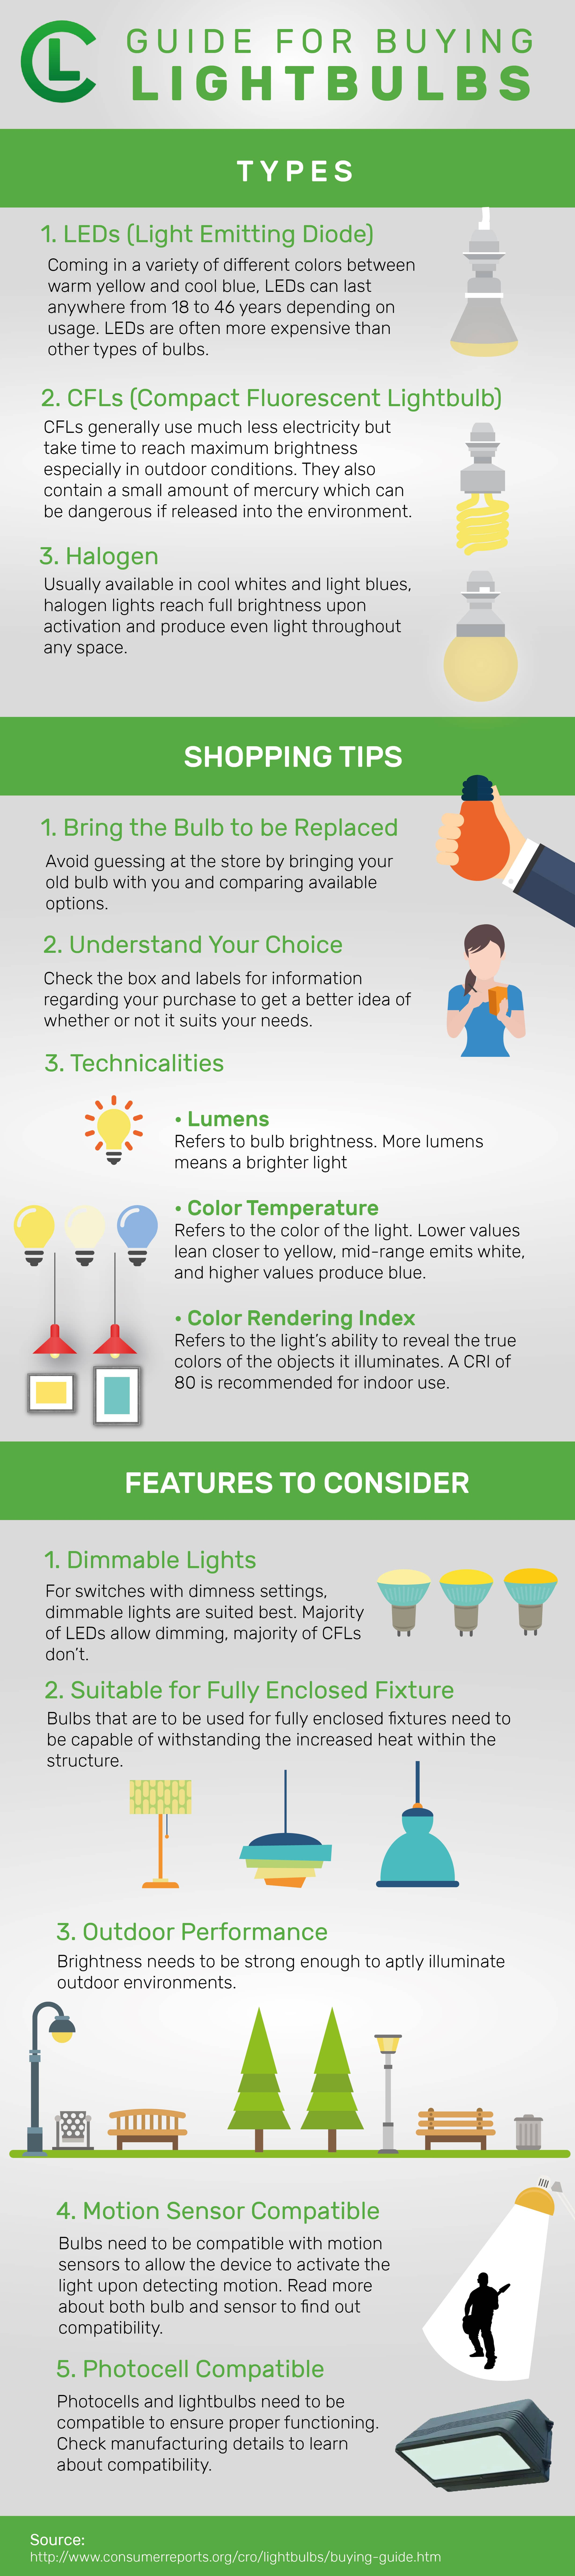 Guide For Buying Lightbulbs Infographic